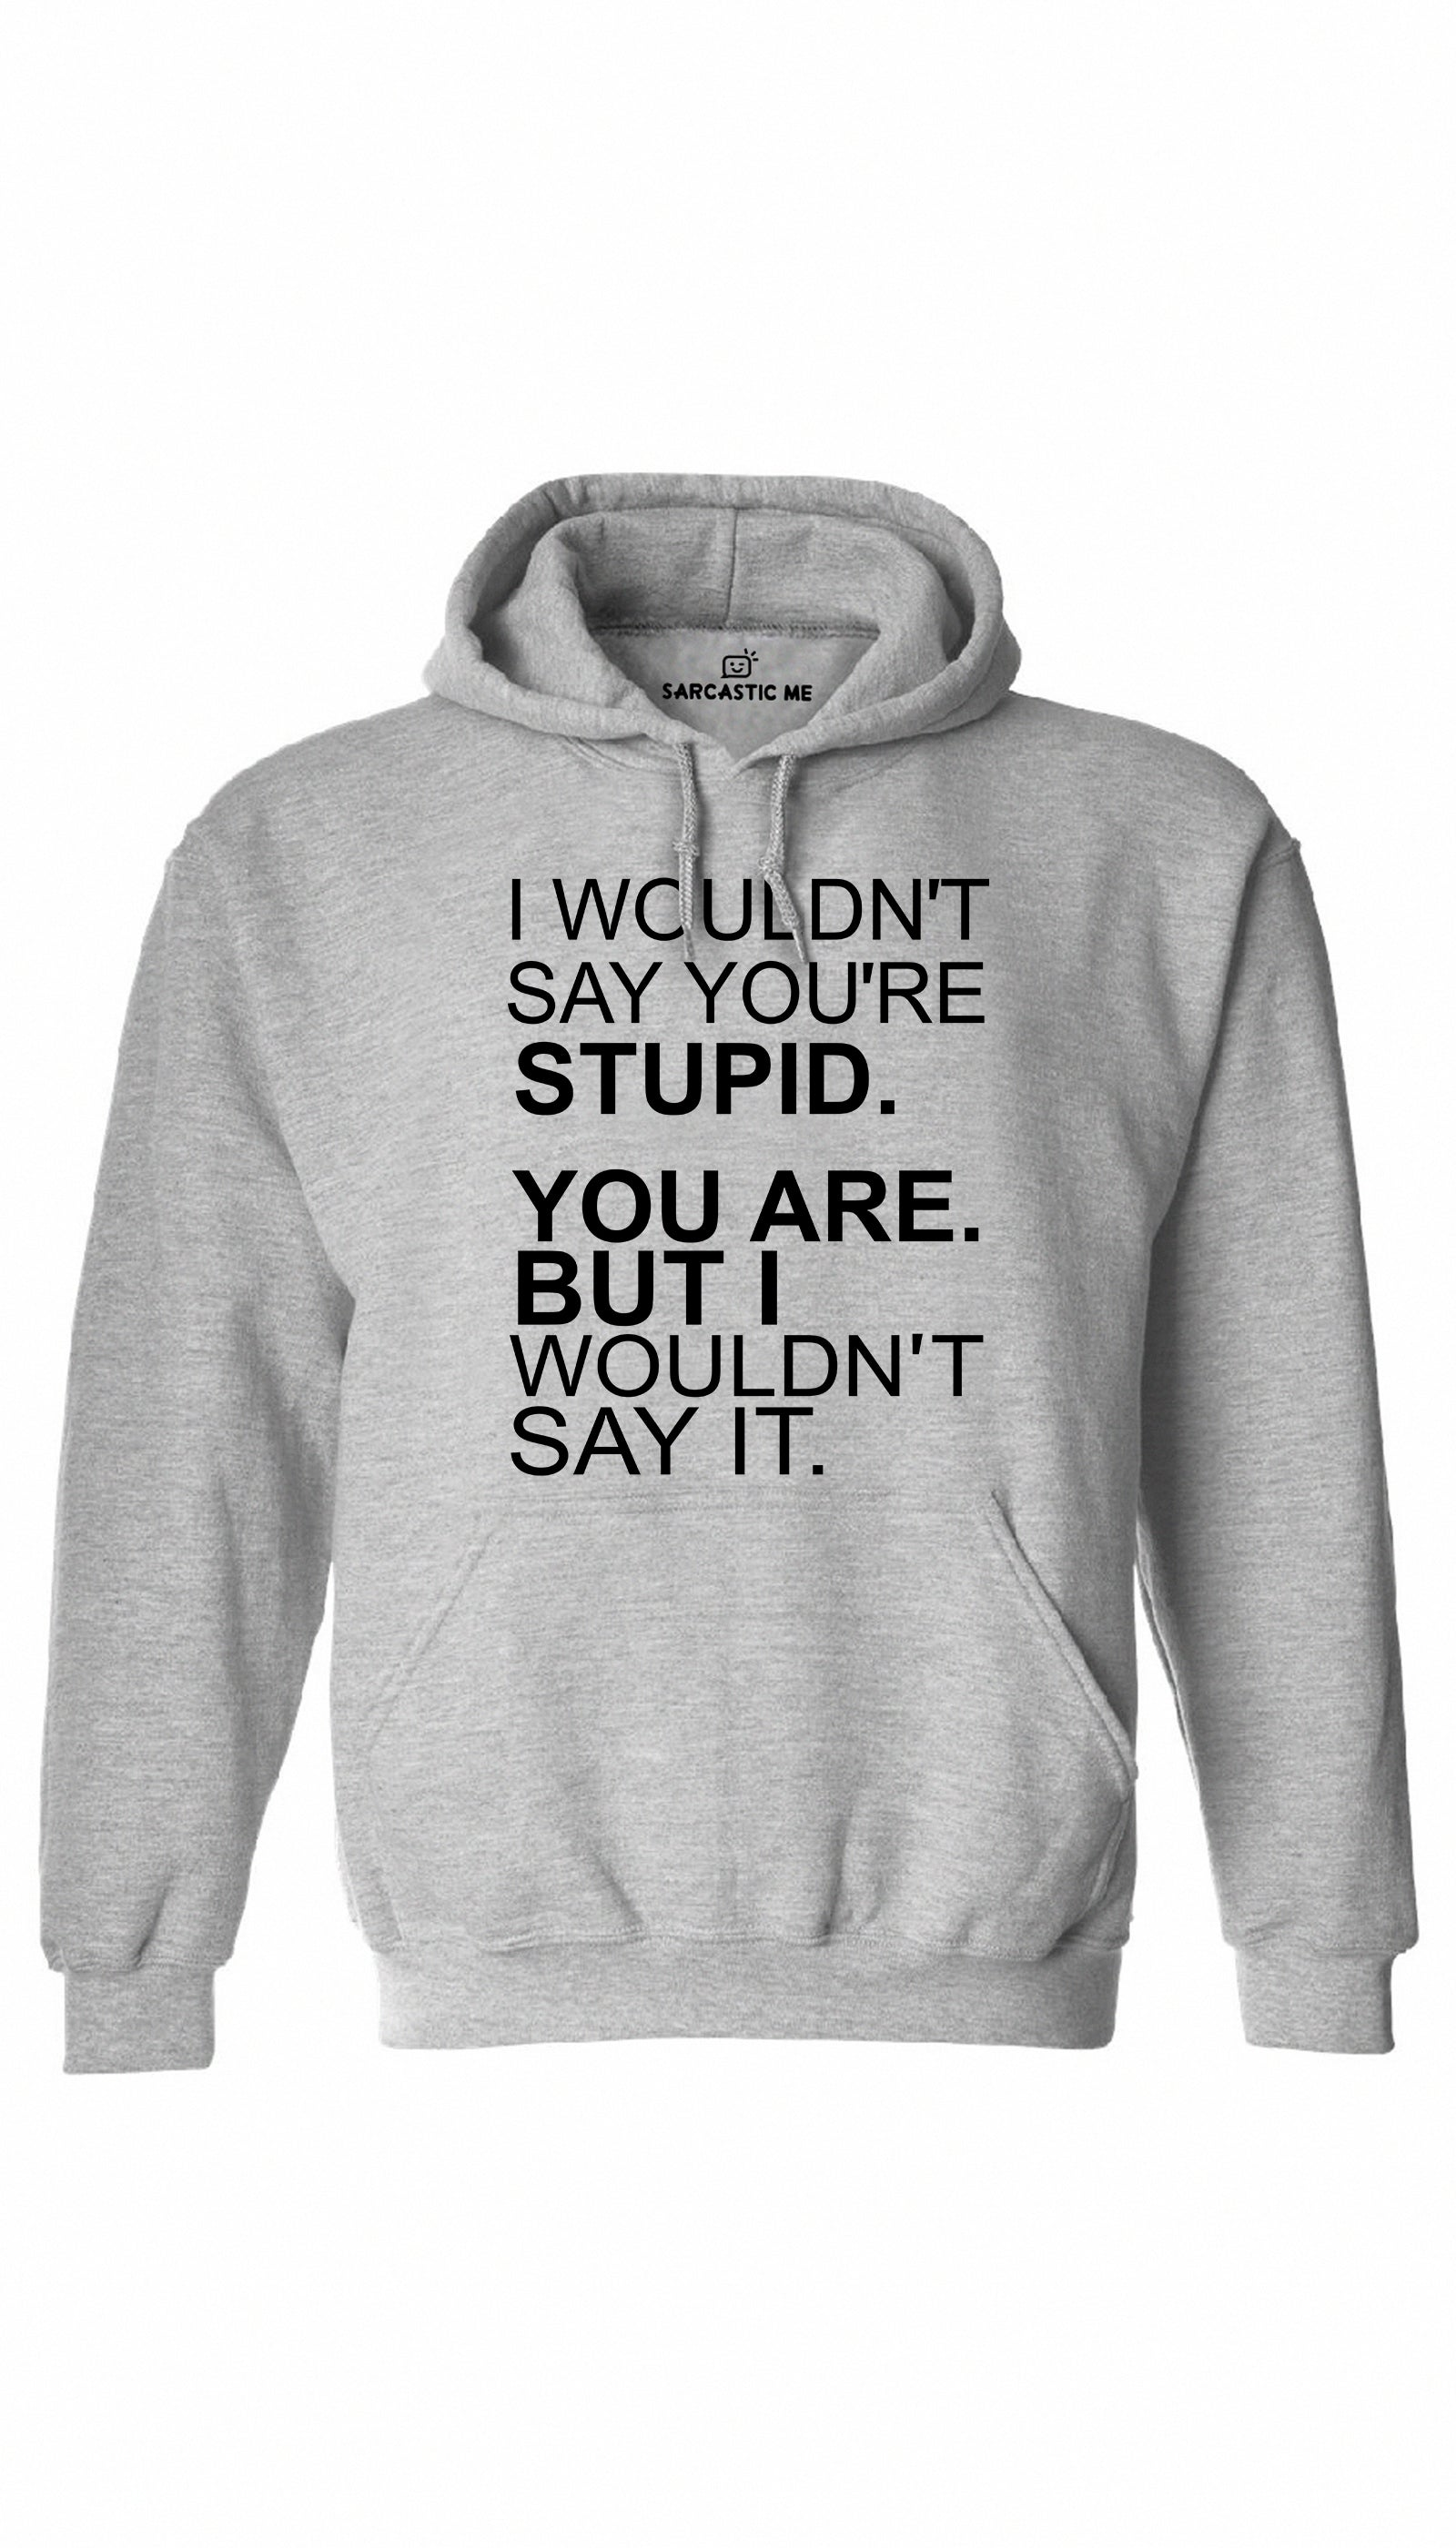 I Wouldn't Say You're Stupid Gray Hoodie | Sarcastic ME